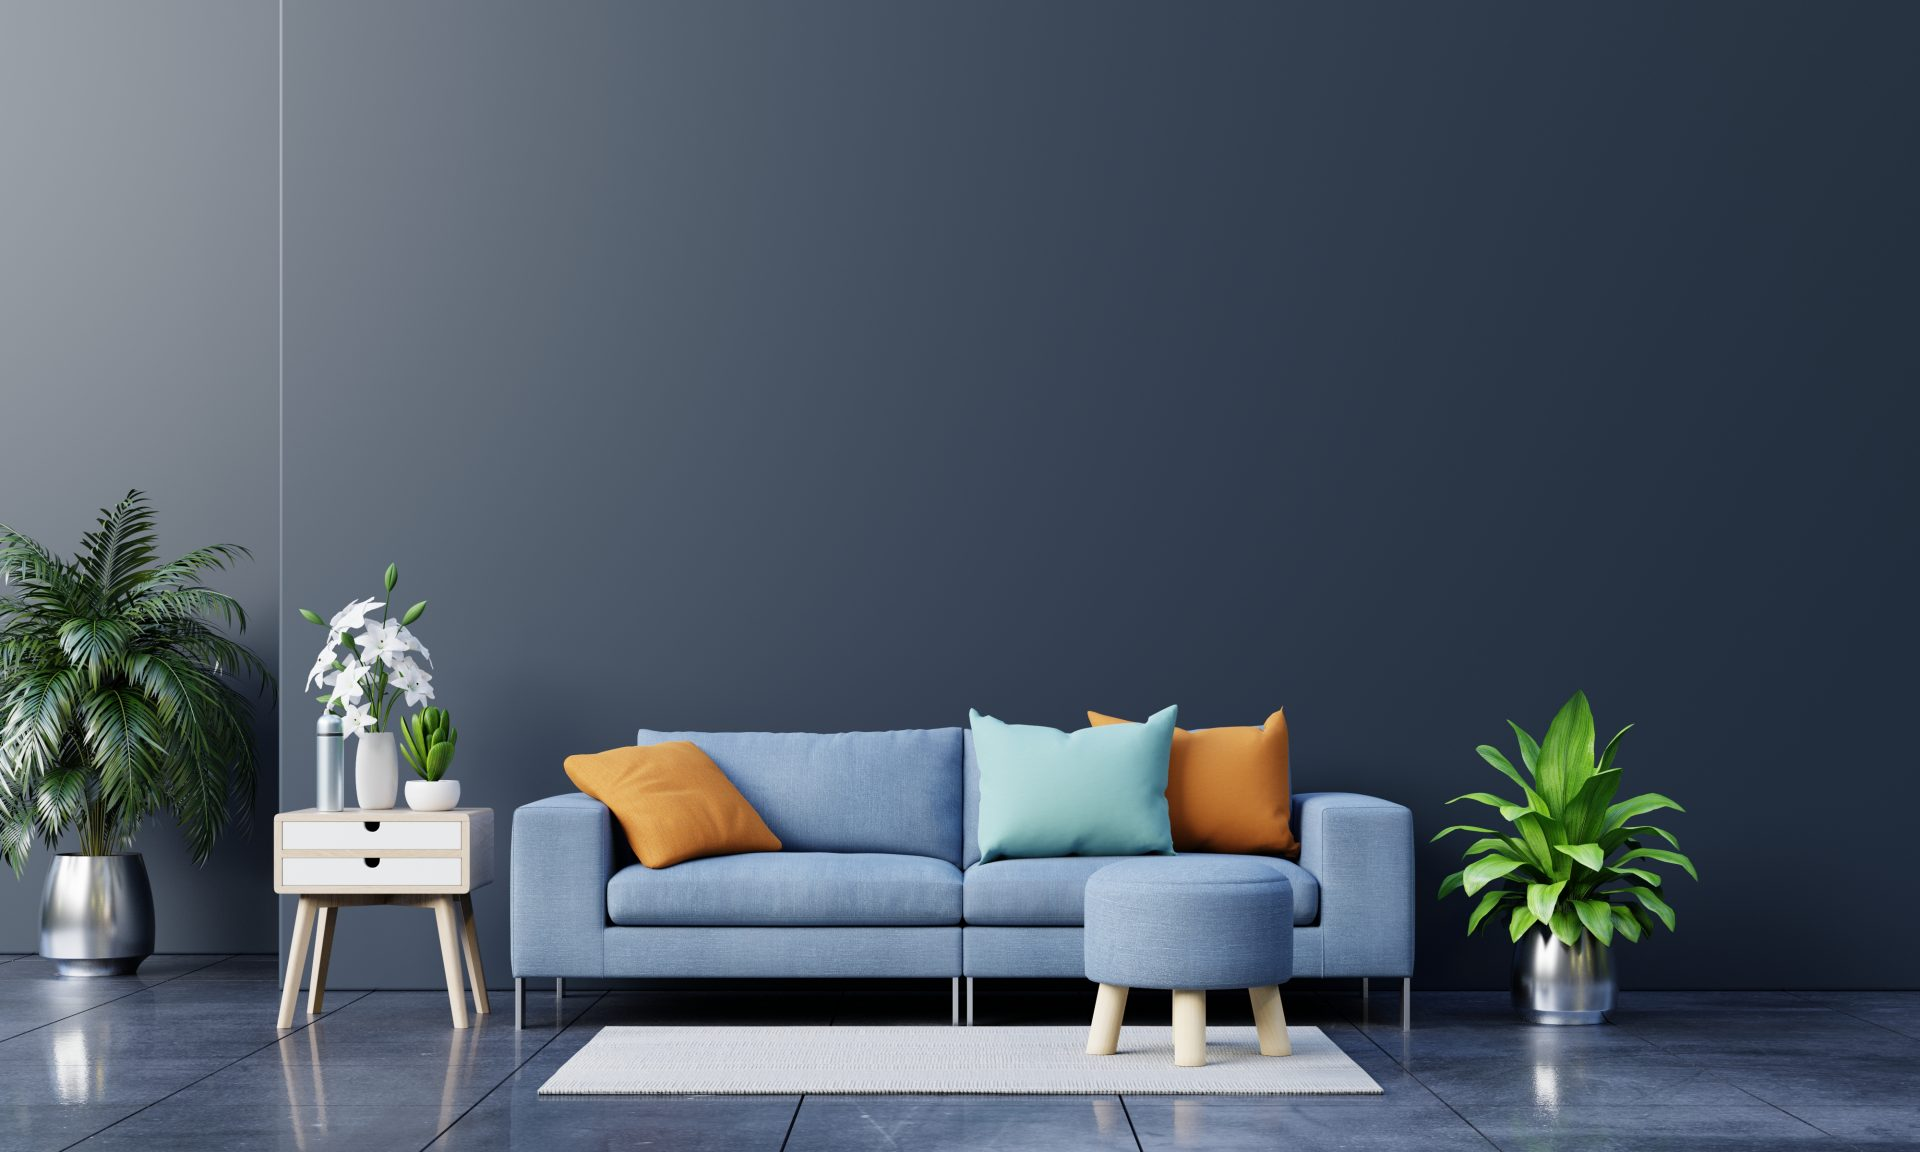 modern-living-room-interior-with-sofa-green-plants-lamp-table-dark-wall-background